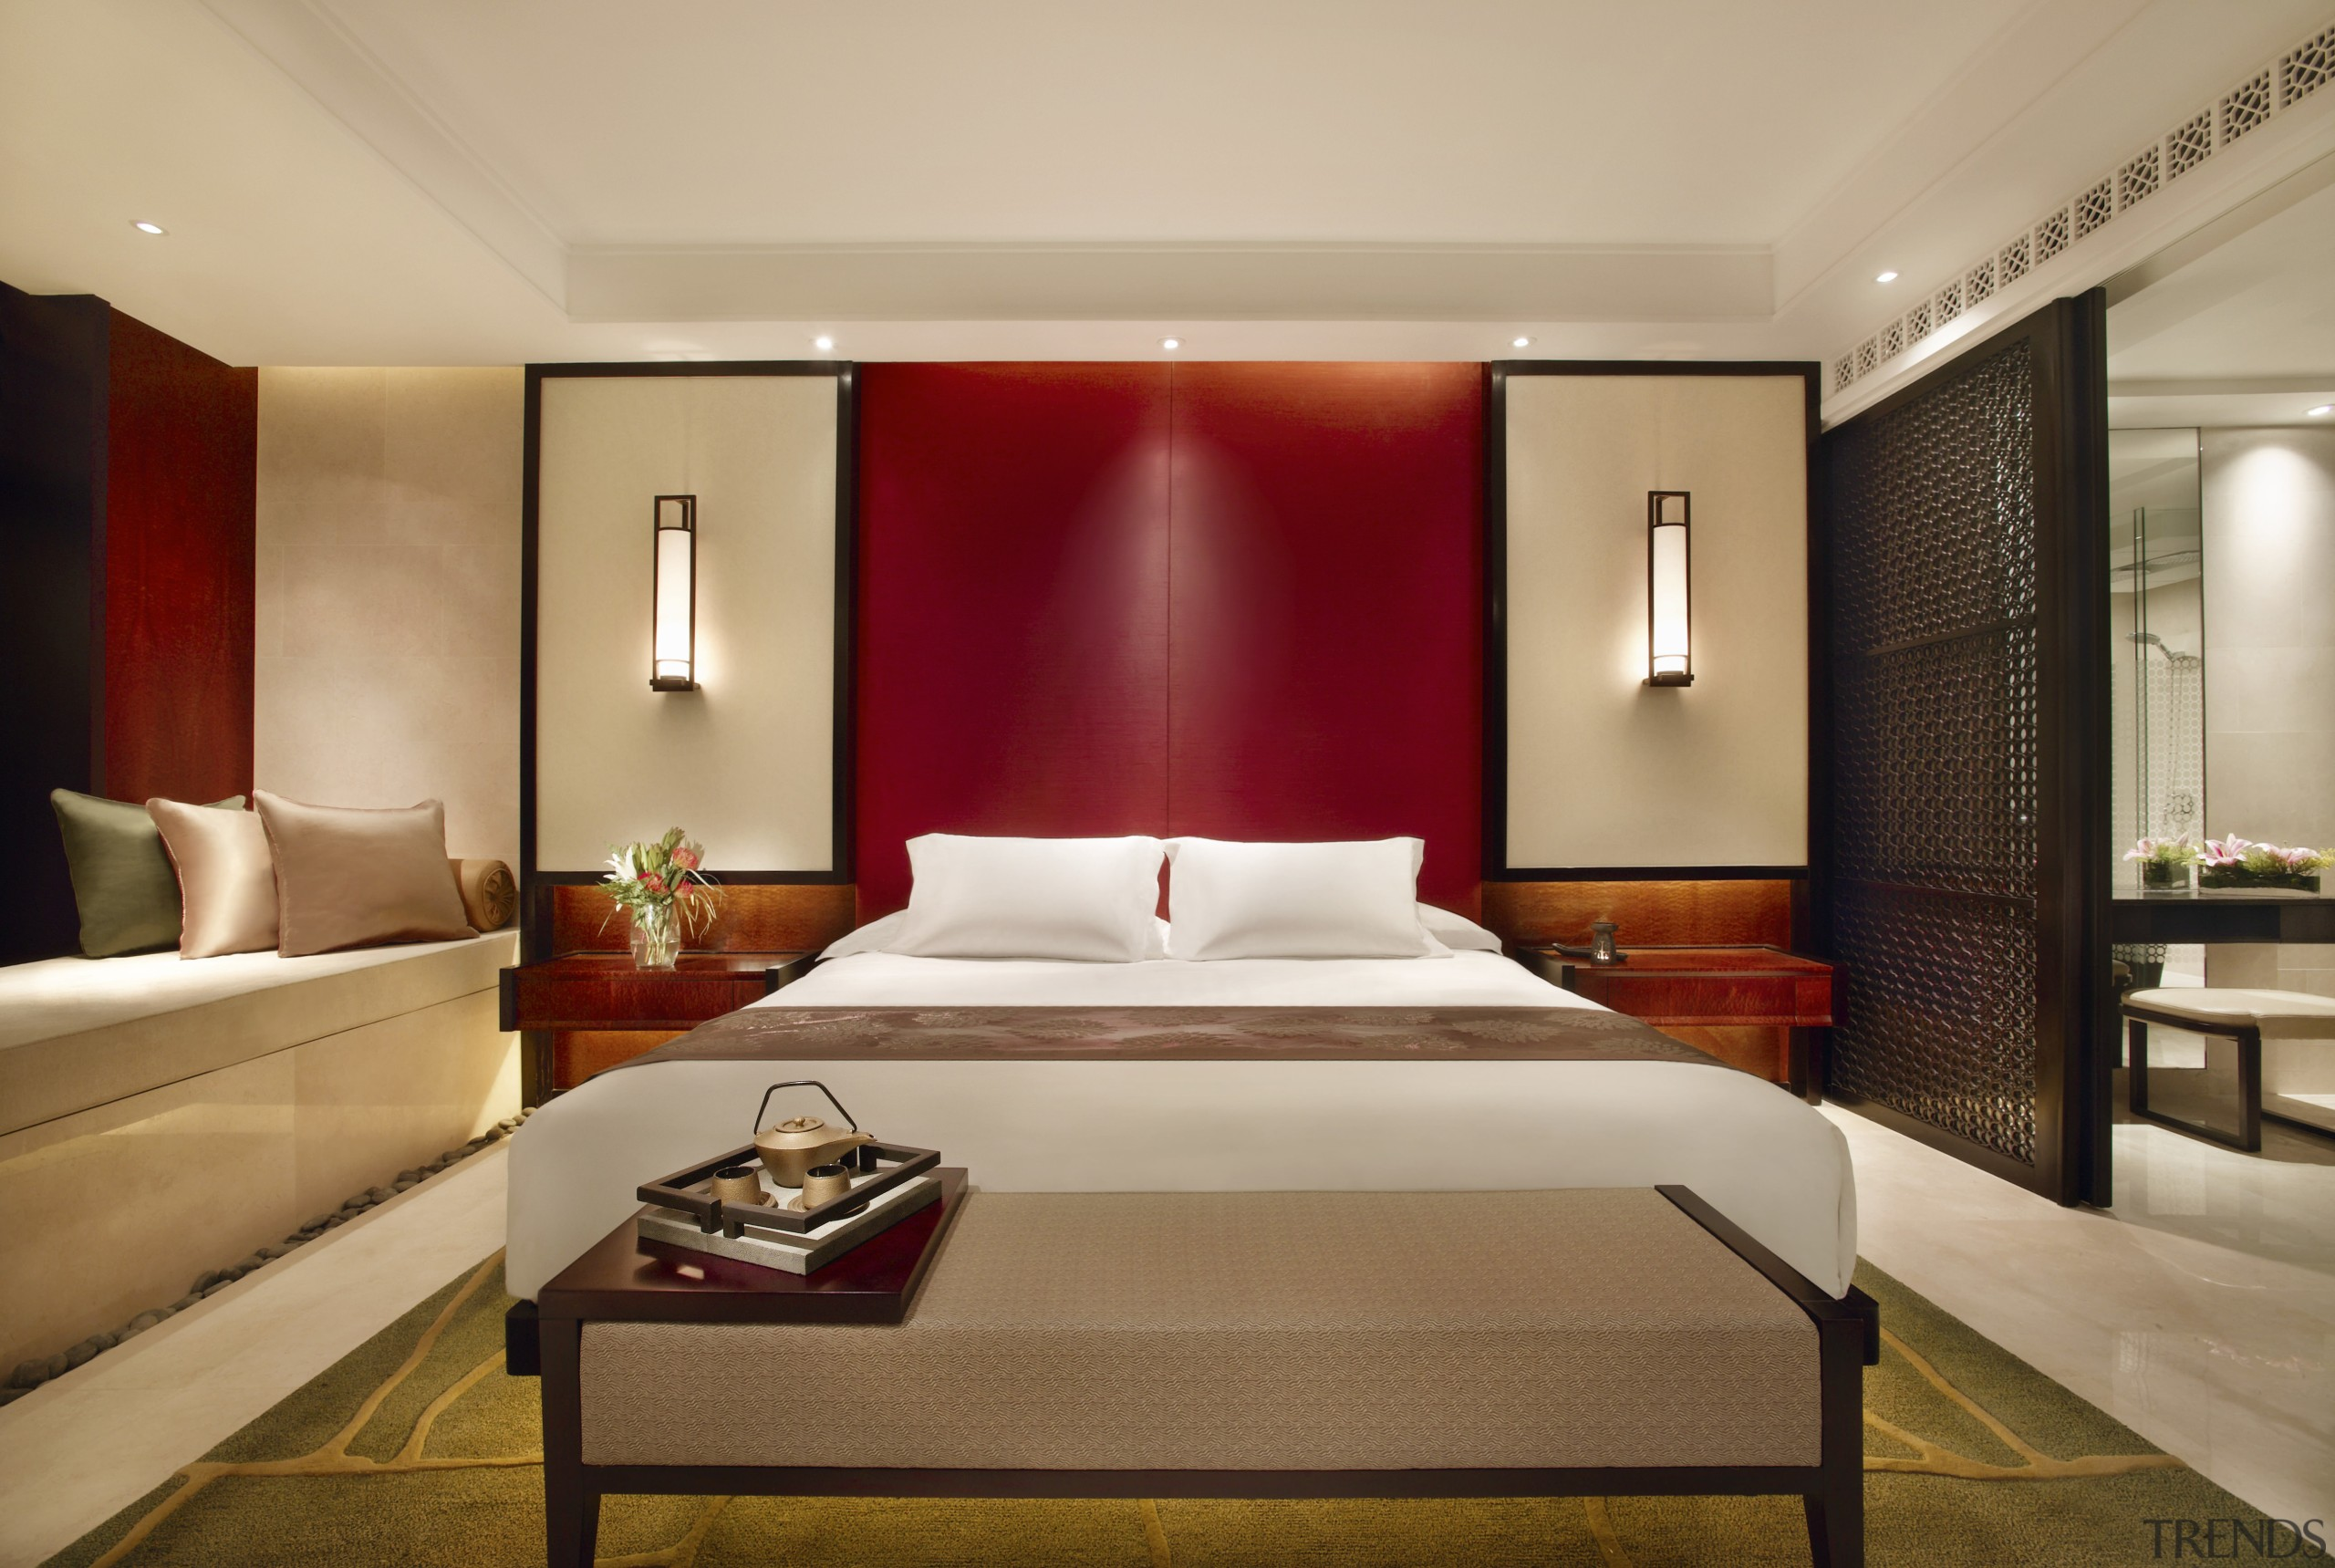 Bedroom with white bed and red feat... - Gallery - 1 | Trends